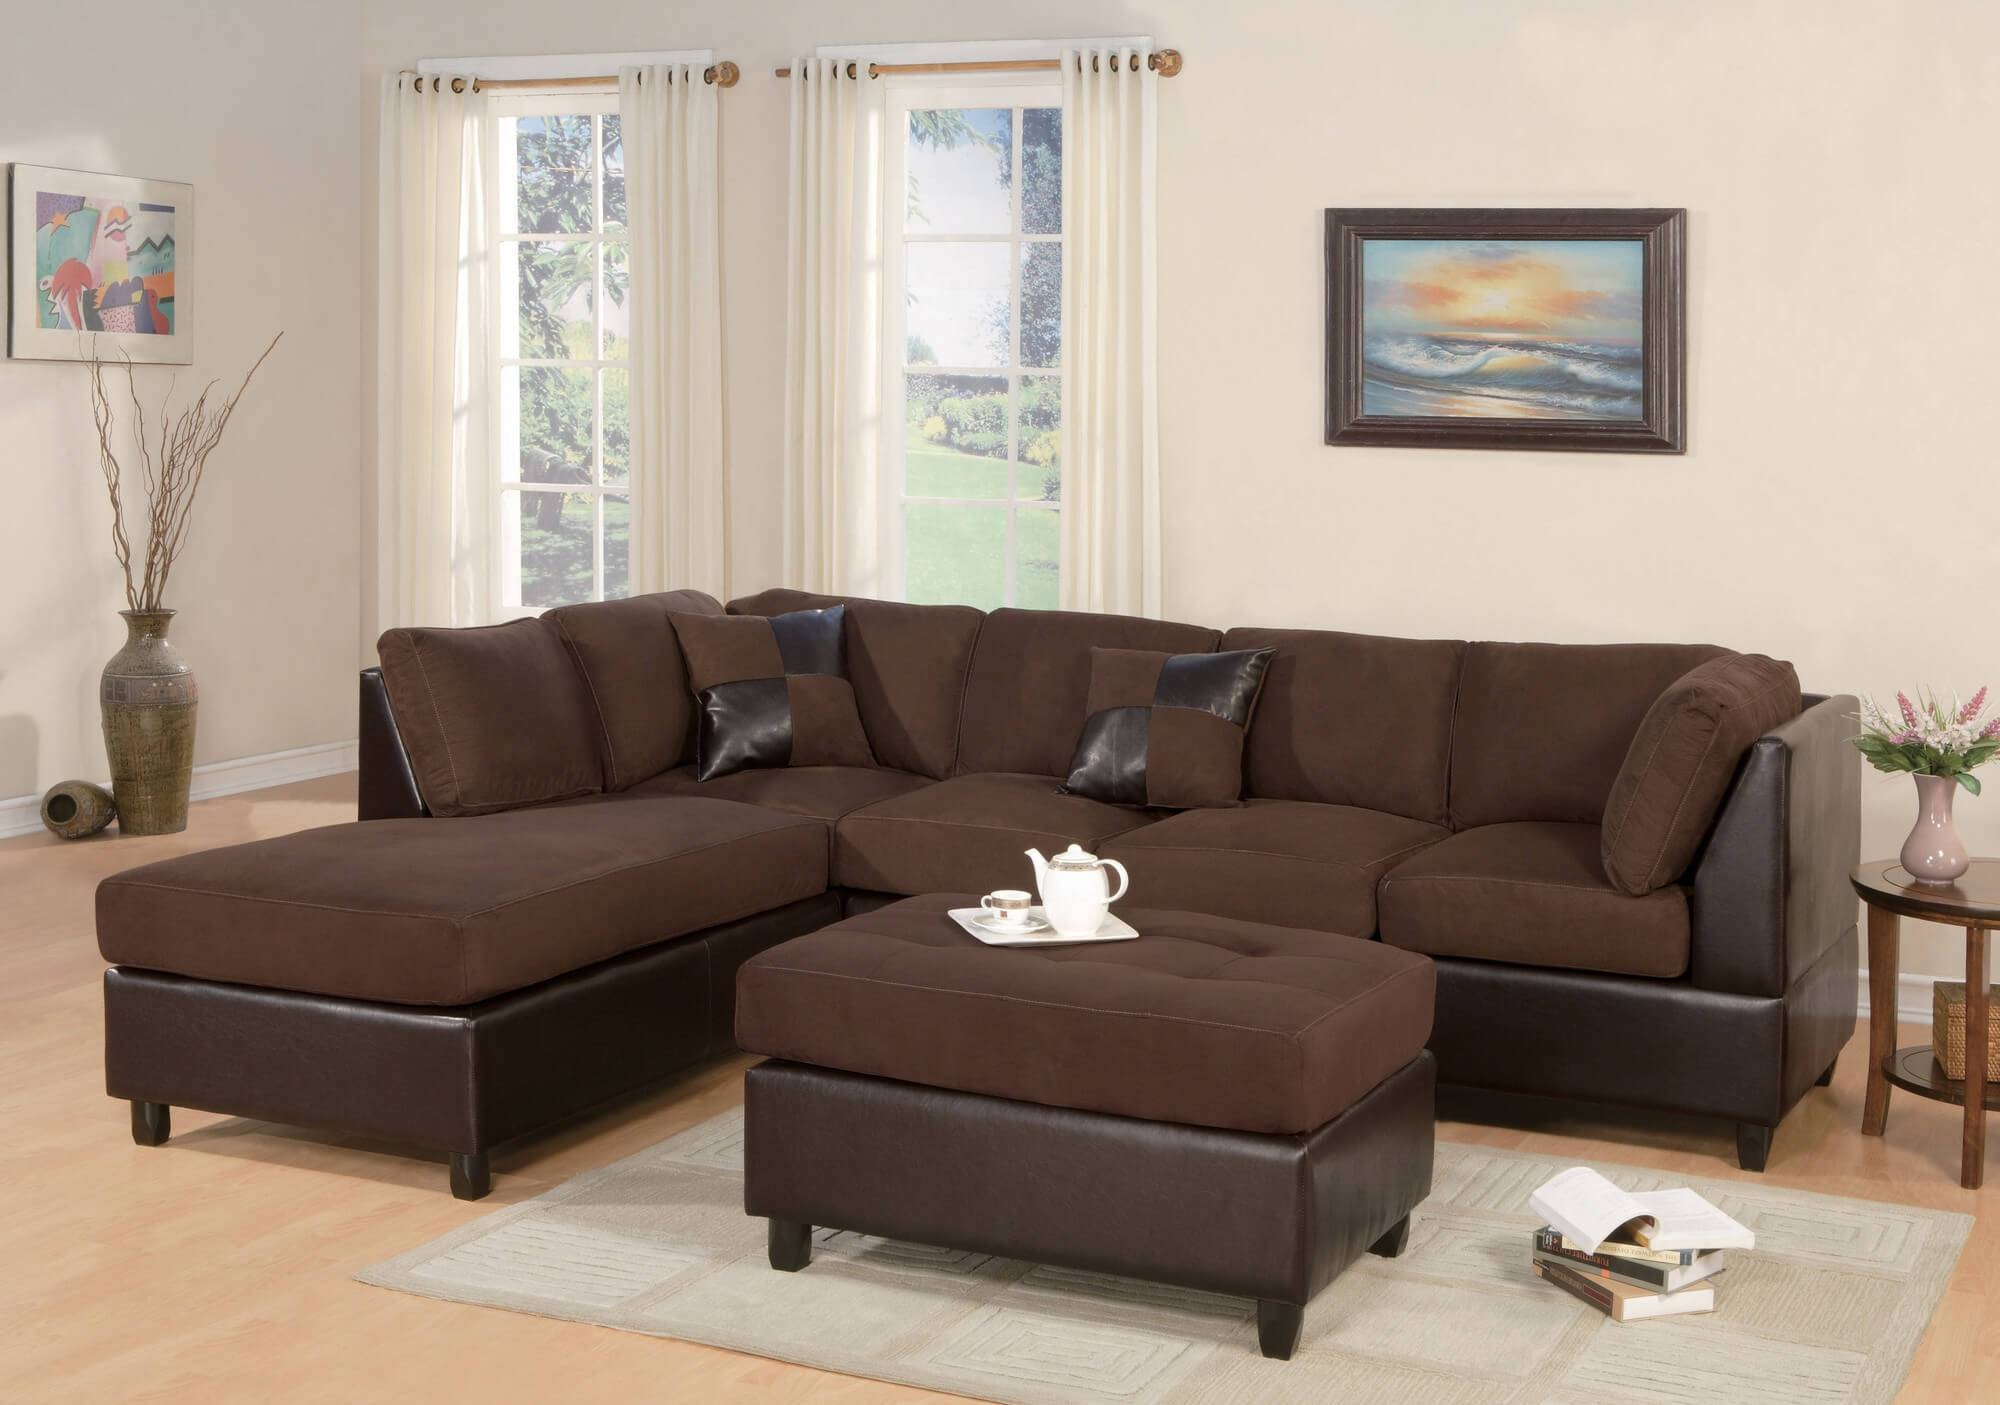 Furniture Home : Sofas Sectionals Stylish Big Lots Sofa Sleeper regarding Big Lots Sofa Sleeper (Image 13 of 30)